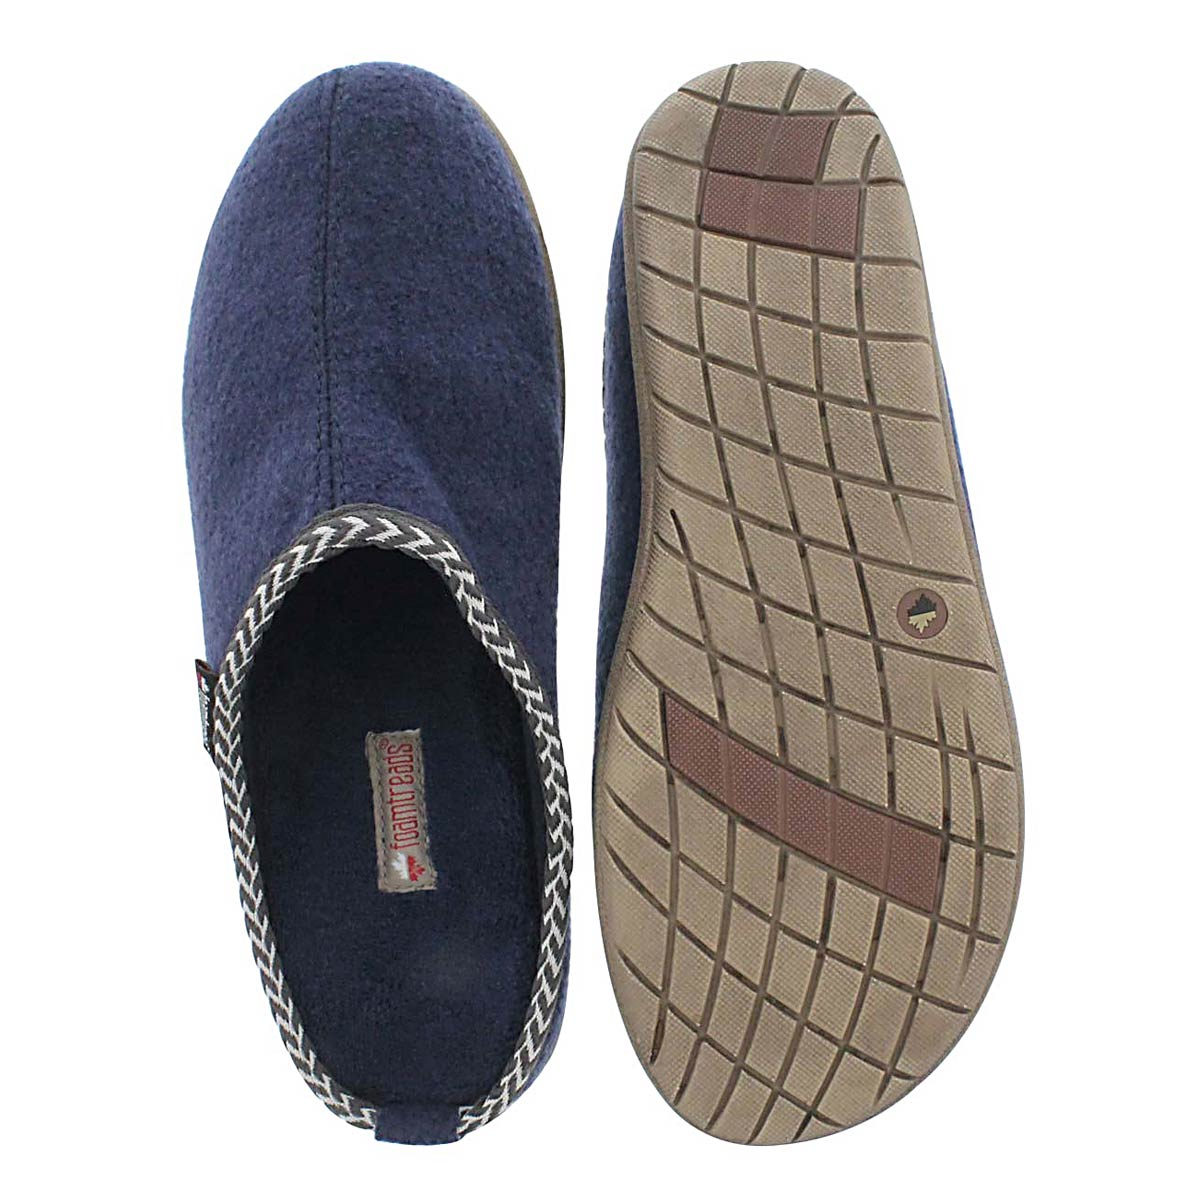 Mns Concord navy open back slipper